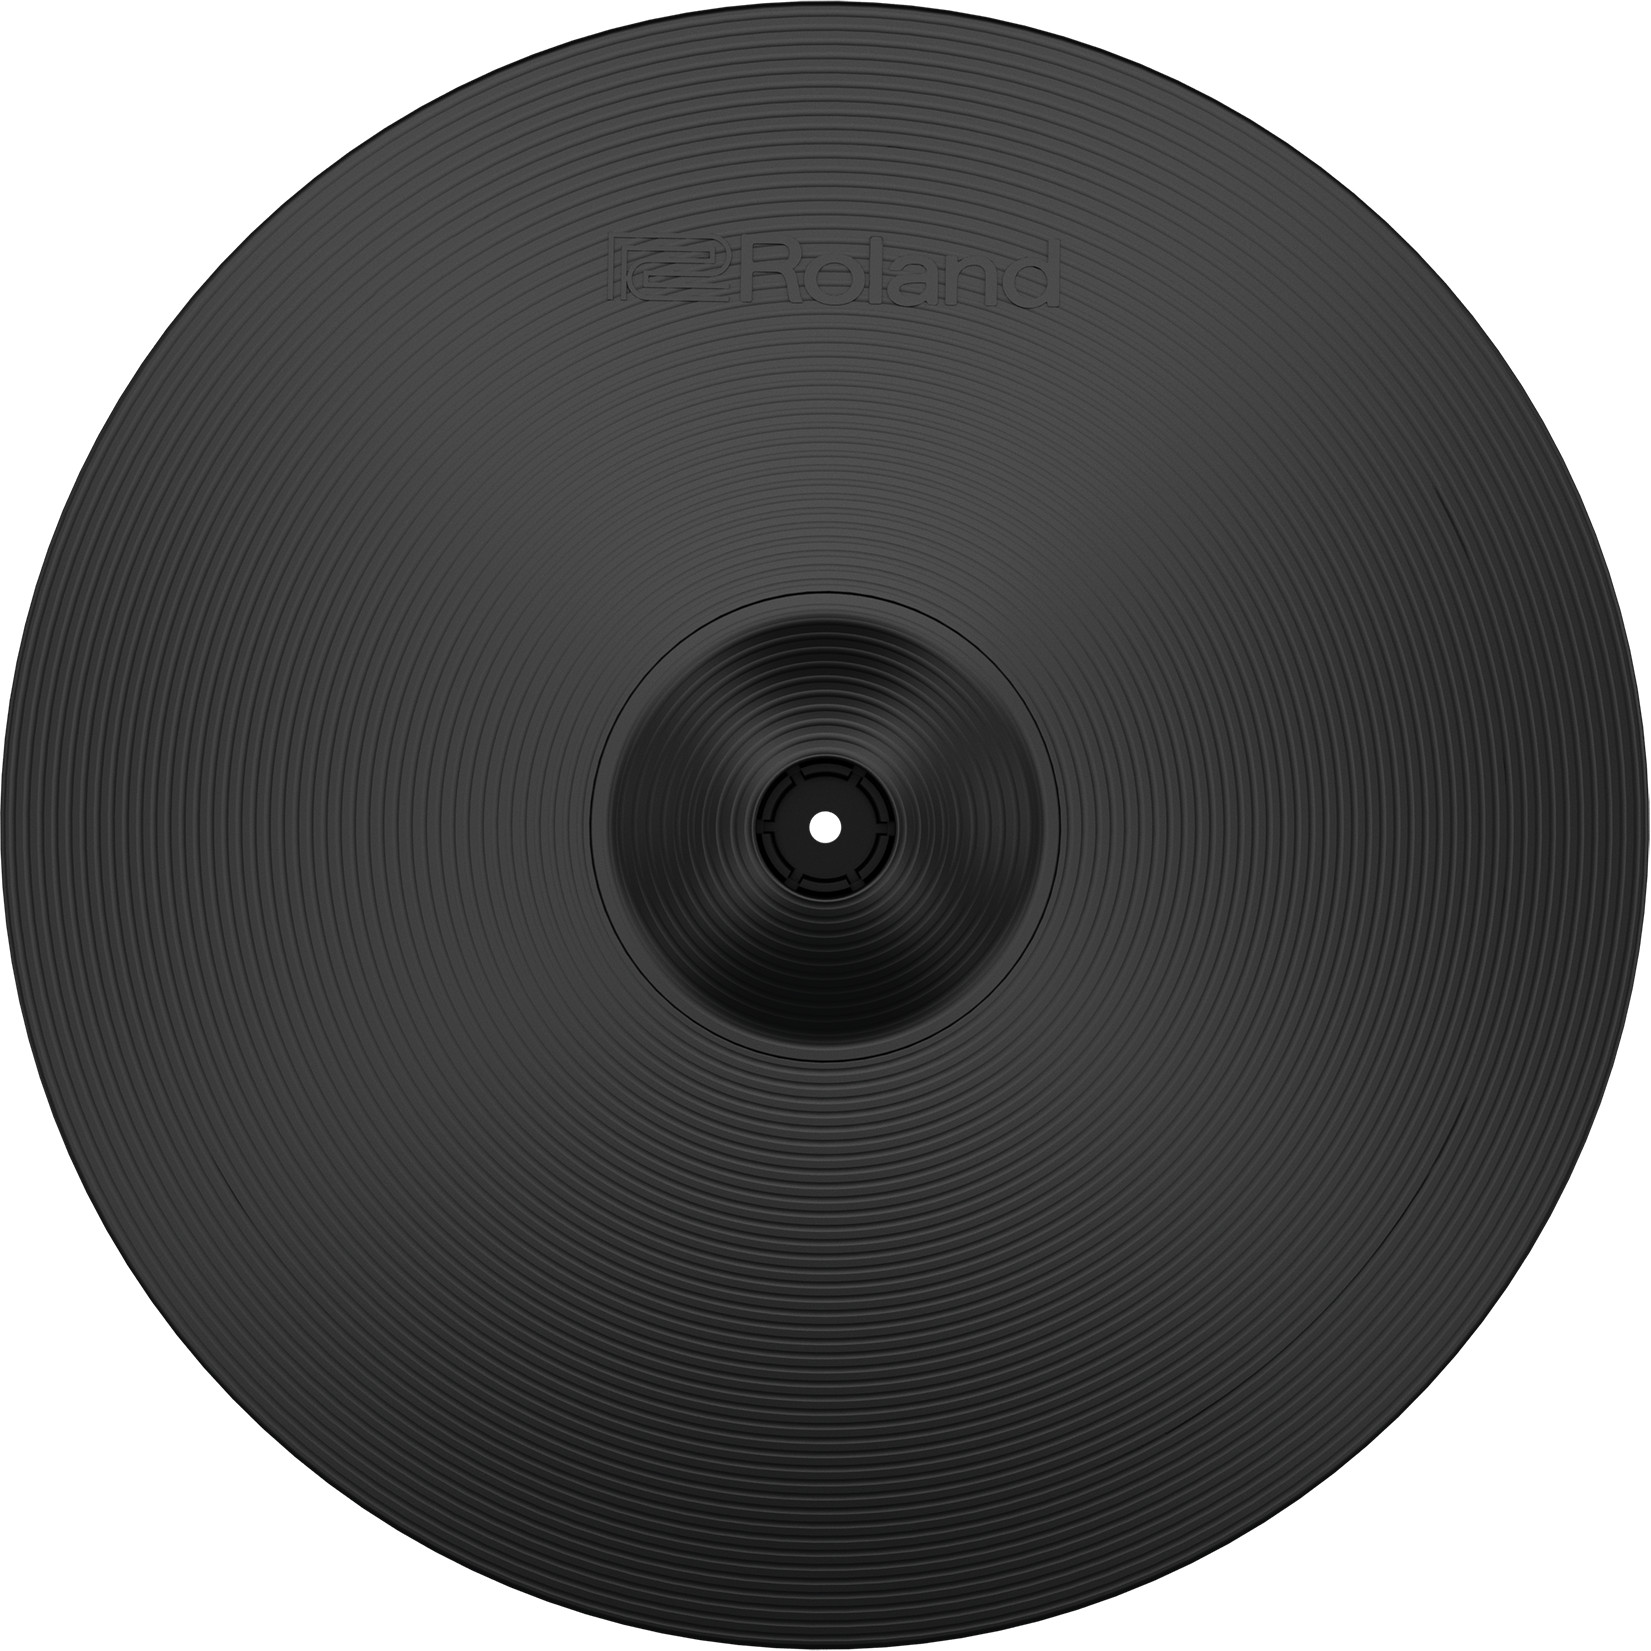 (B Ware) Roland CY 18DR cymbal pad 18 inch